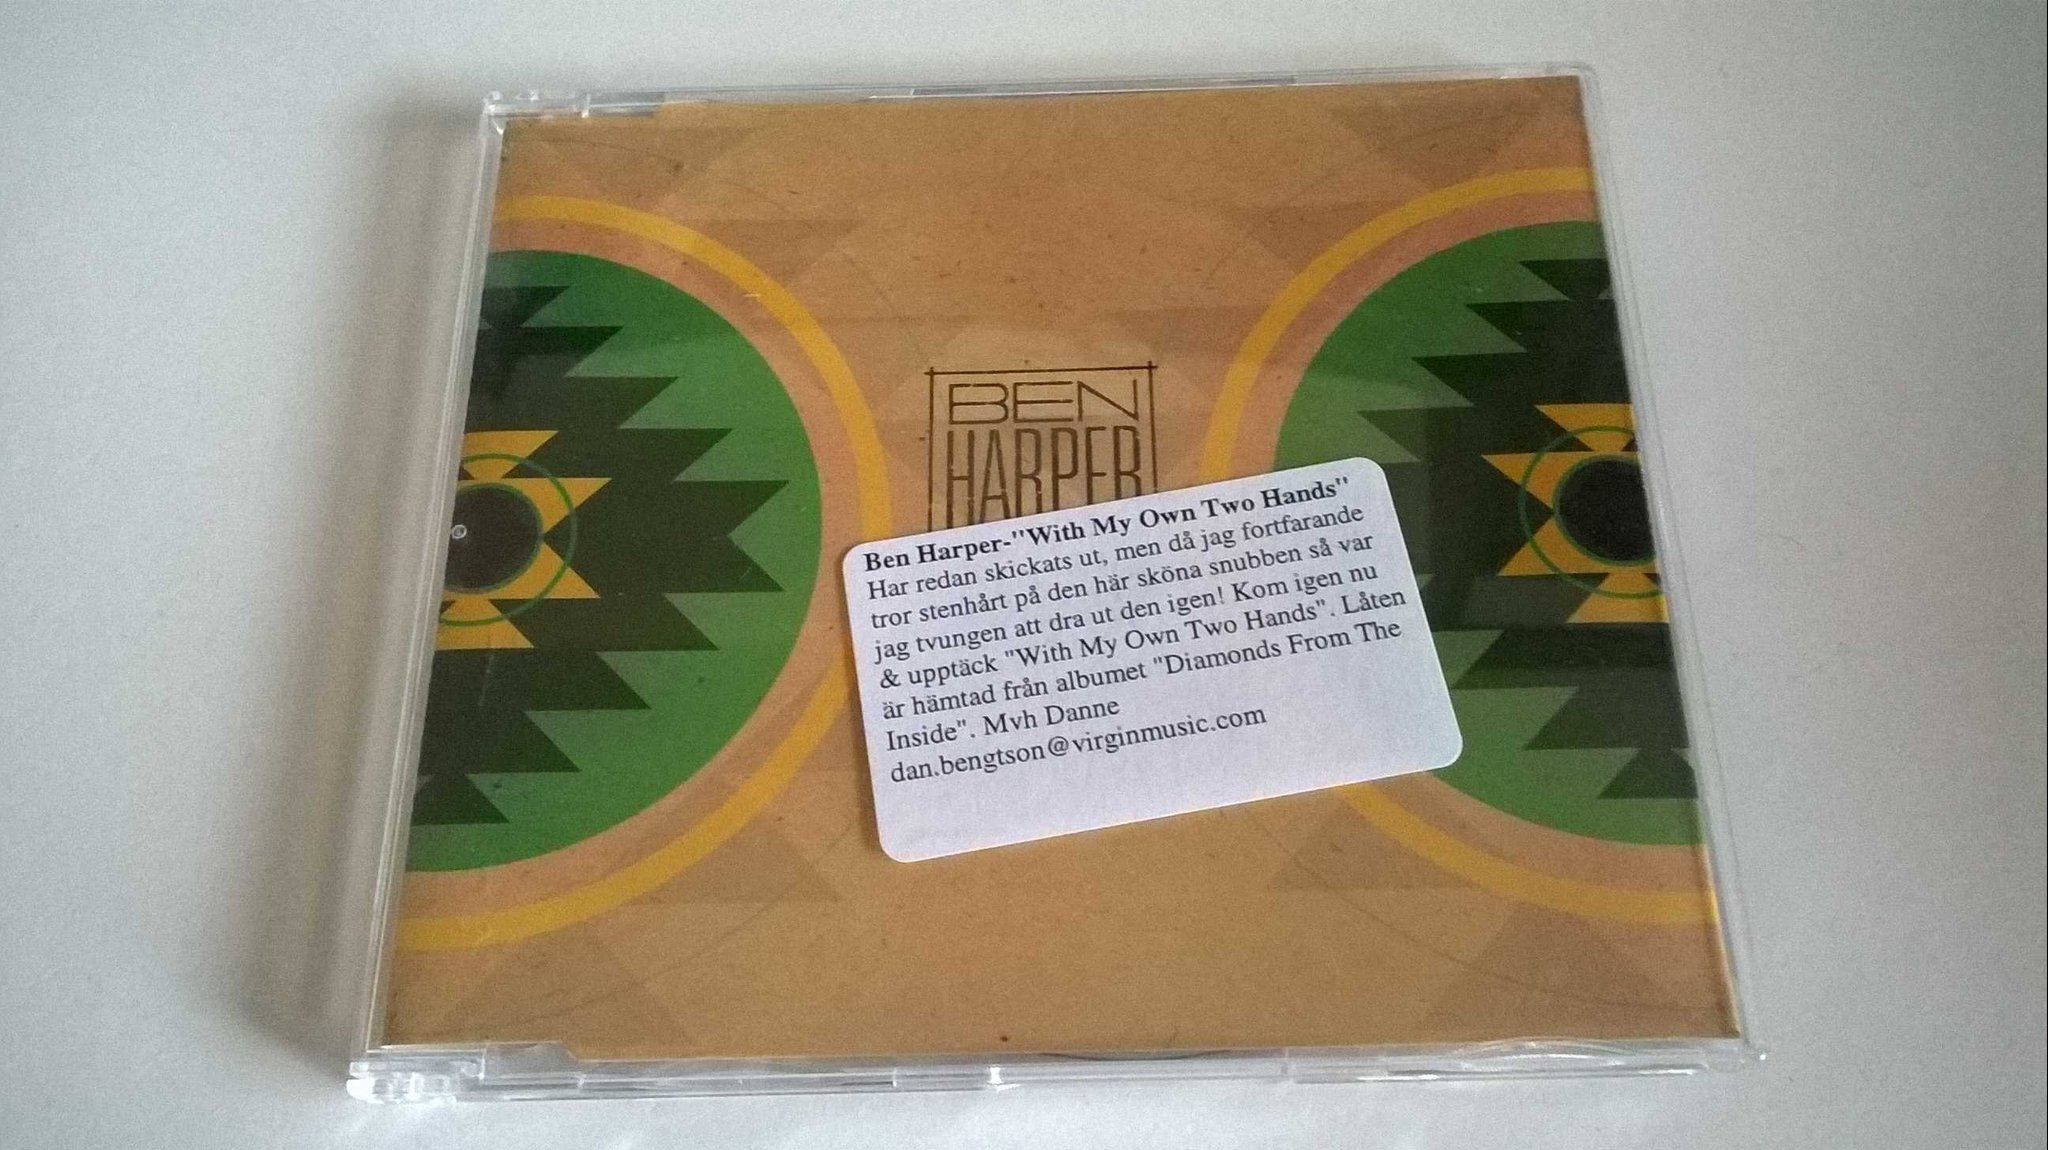 Ben Harper - With My Own Two Hands, CD